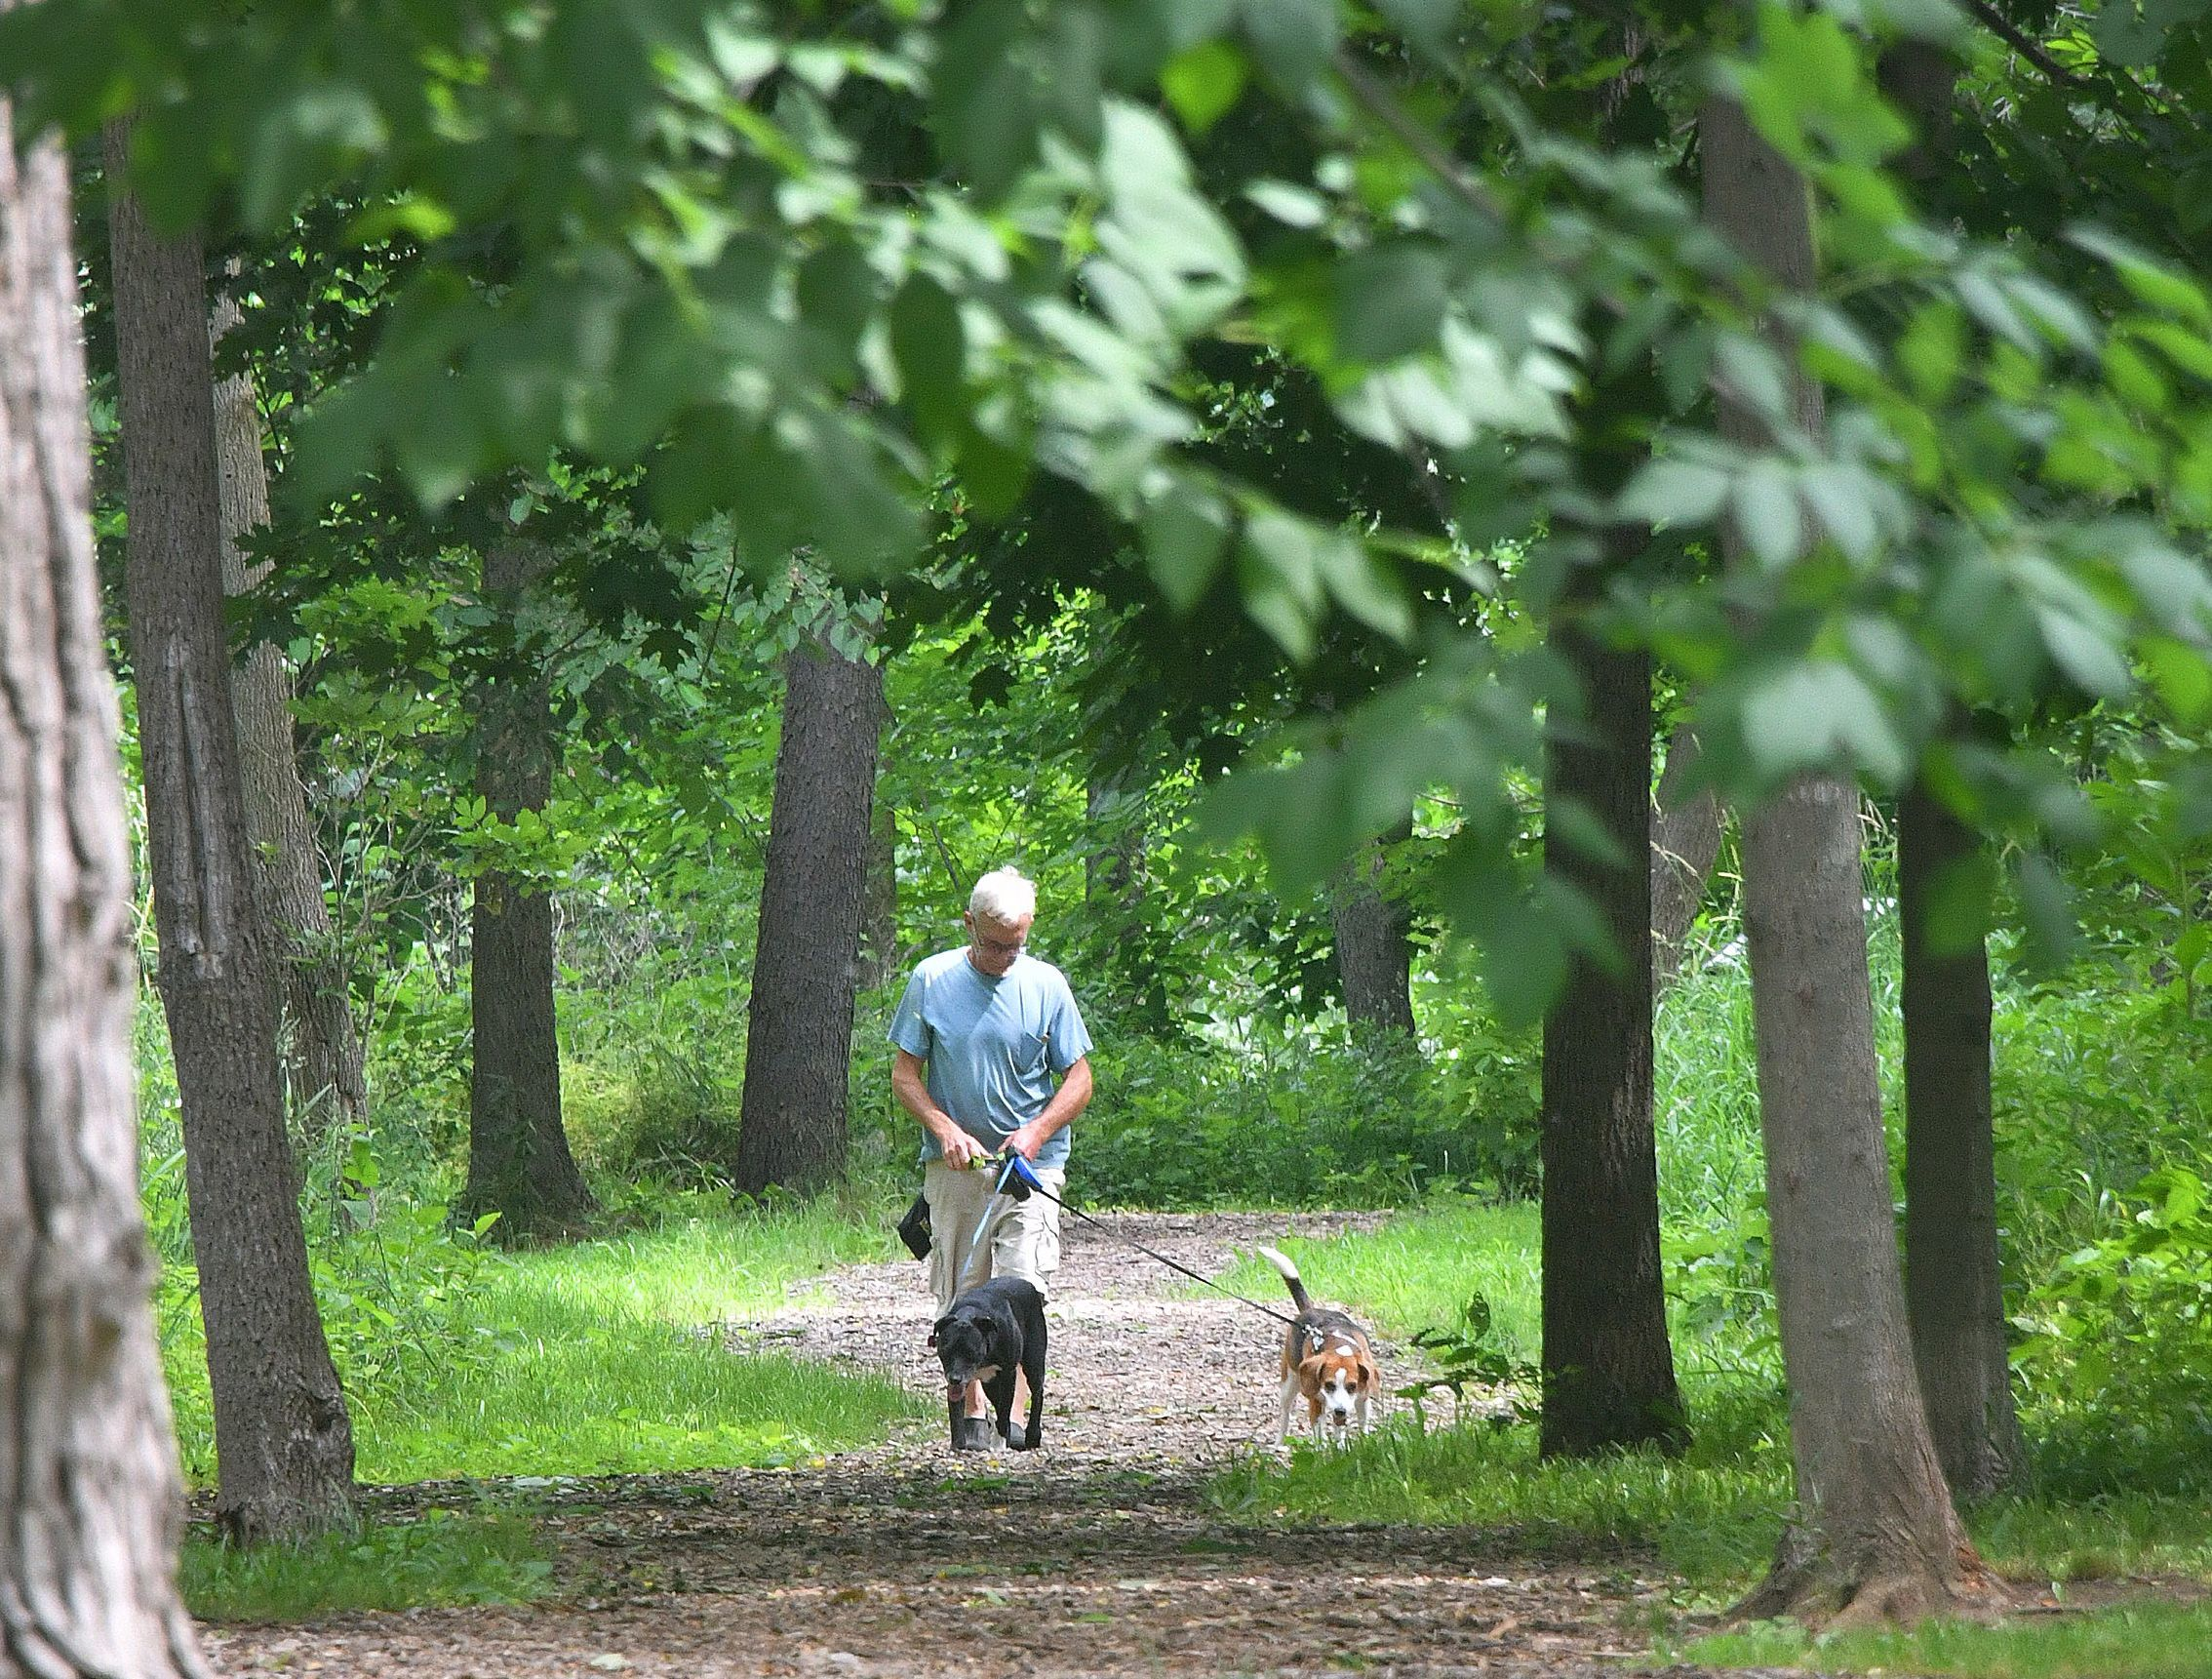 A stroller walks a pair of dogs through Danford Island Park in Dimondale, Michigan in this Jun 25, 2018, file photo. A nearly $170K grant from the Michigan Natural Resources Trust Fund helped to restore the contaminated, abandoned park.